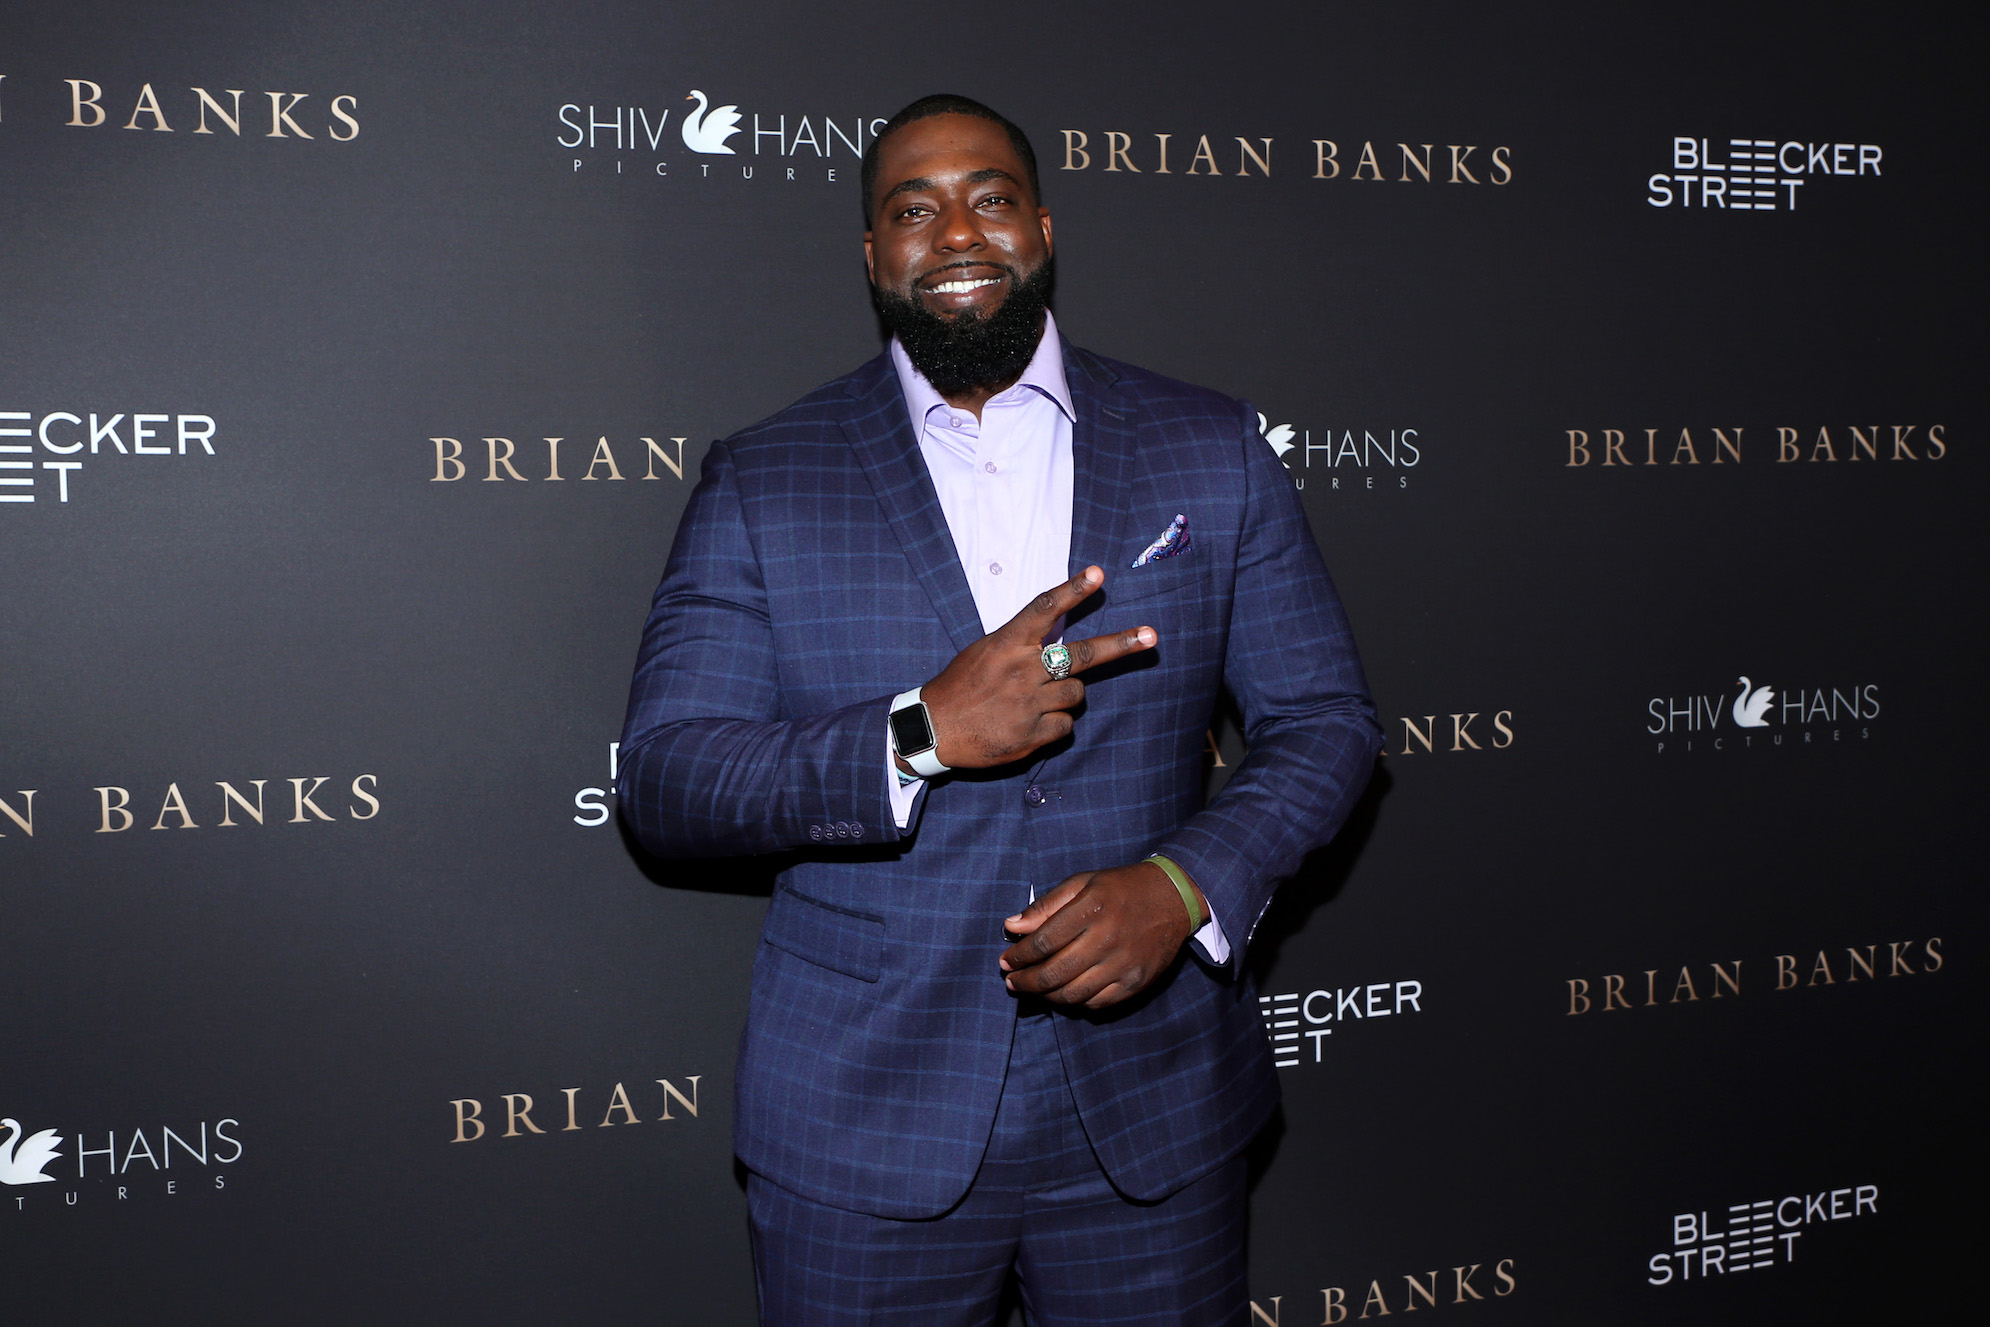 Brian Banks was a high school football star in California, but his college and NFL dreams were shattered by a wrongful conviction.